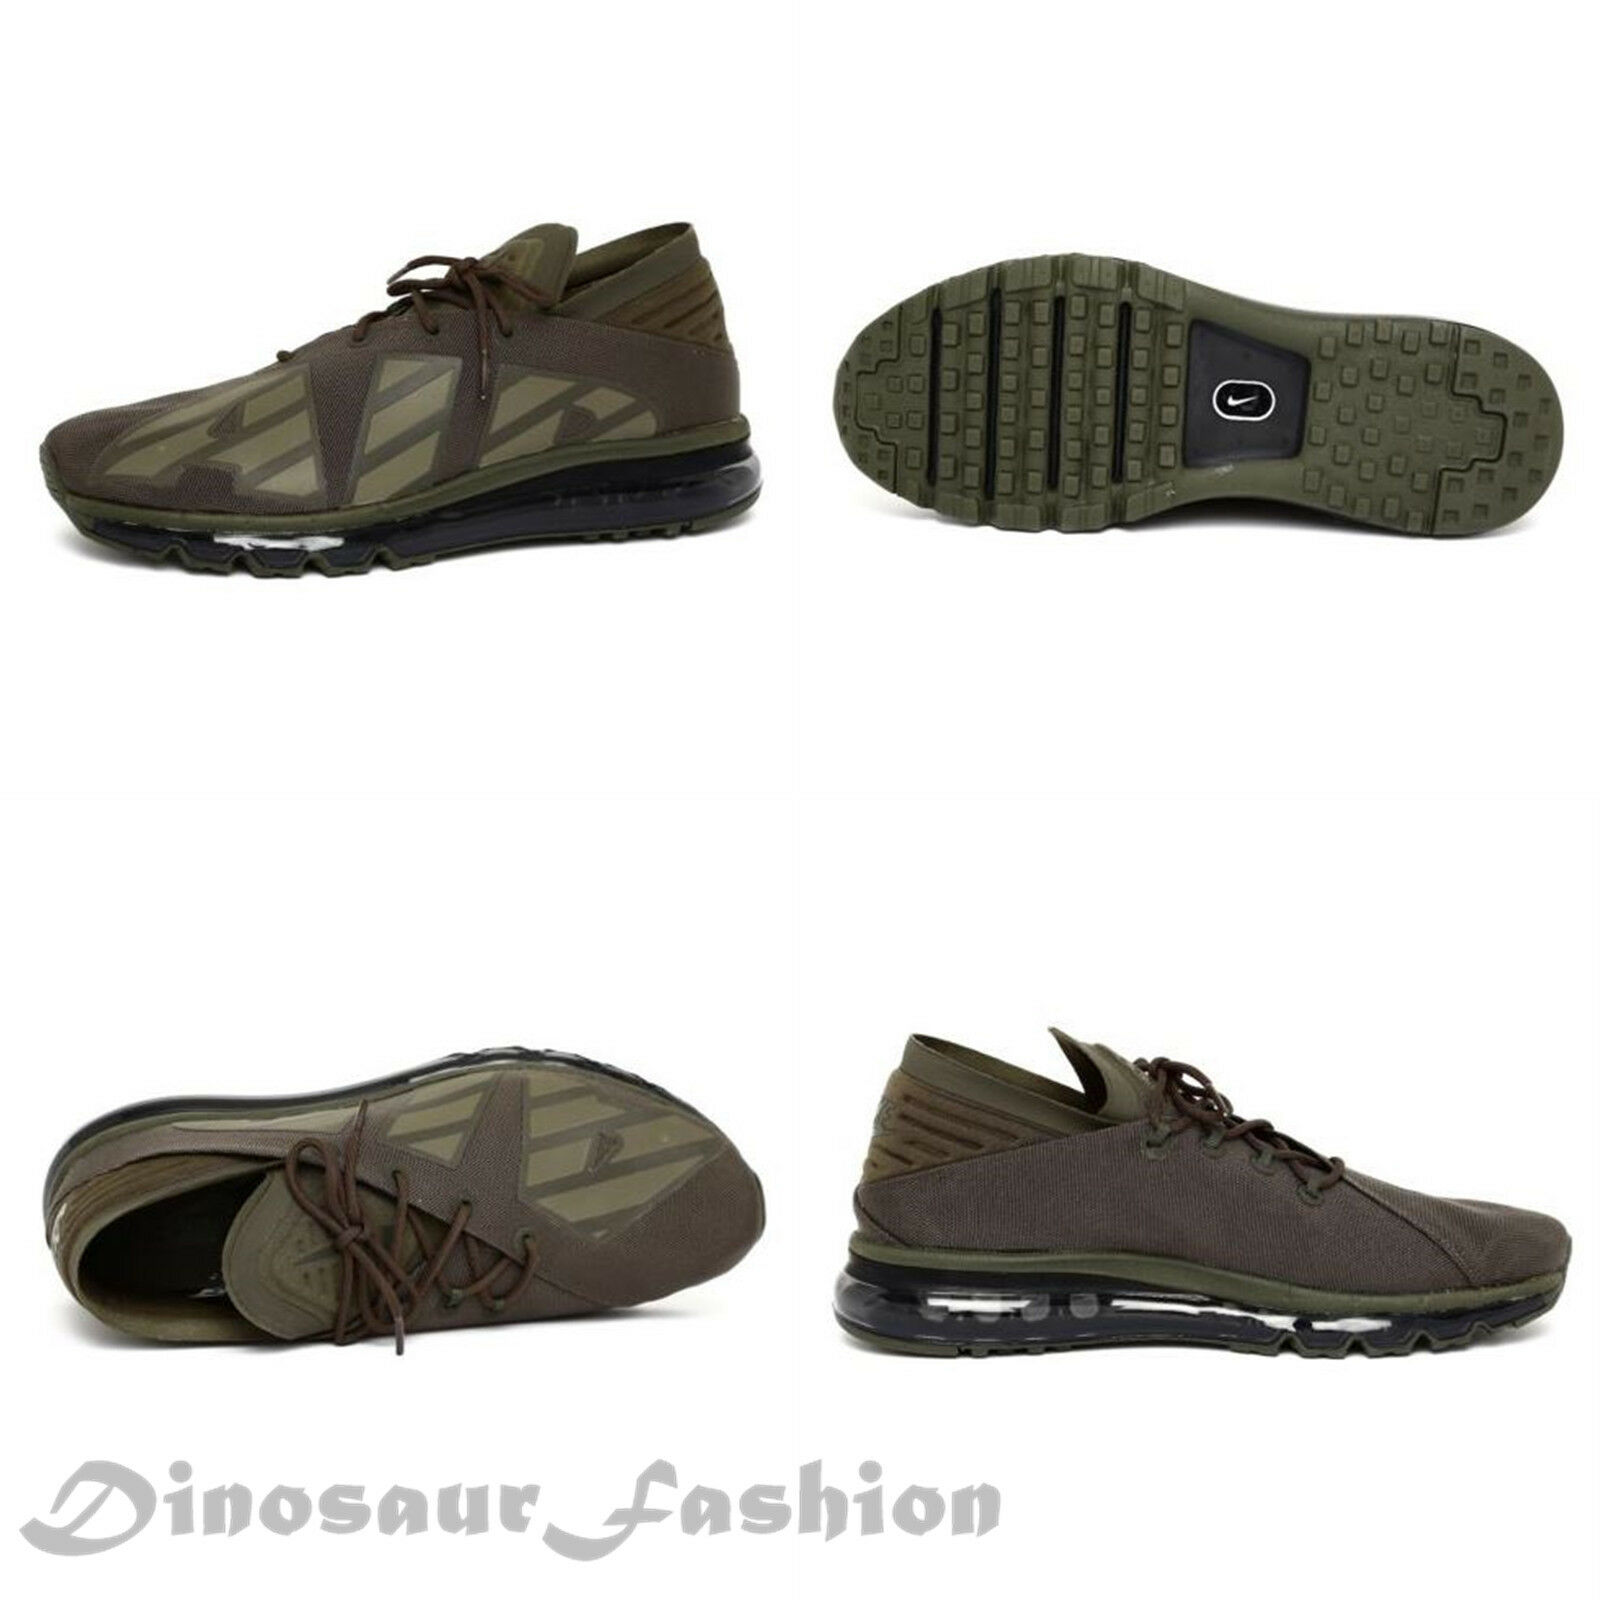 NIKE AIR MAX FLAIR SE  CARGO KHAKI,Men's fonctionnement chaussures.New with Box.